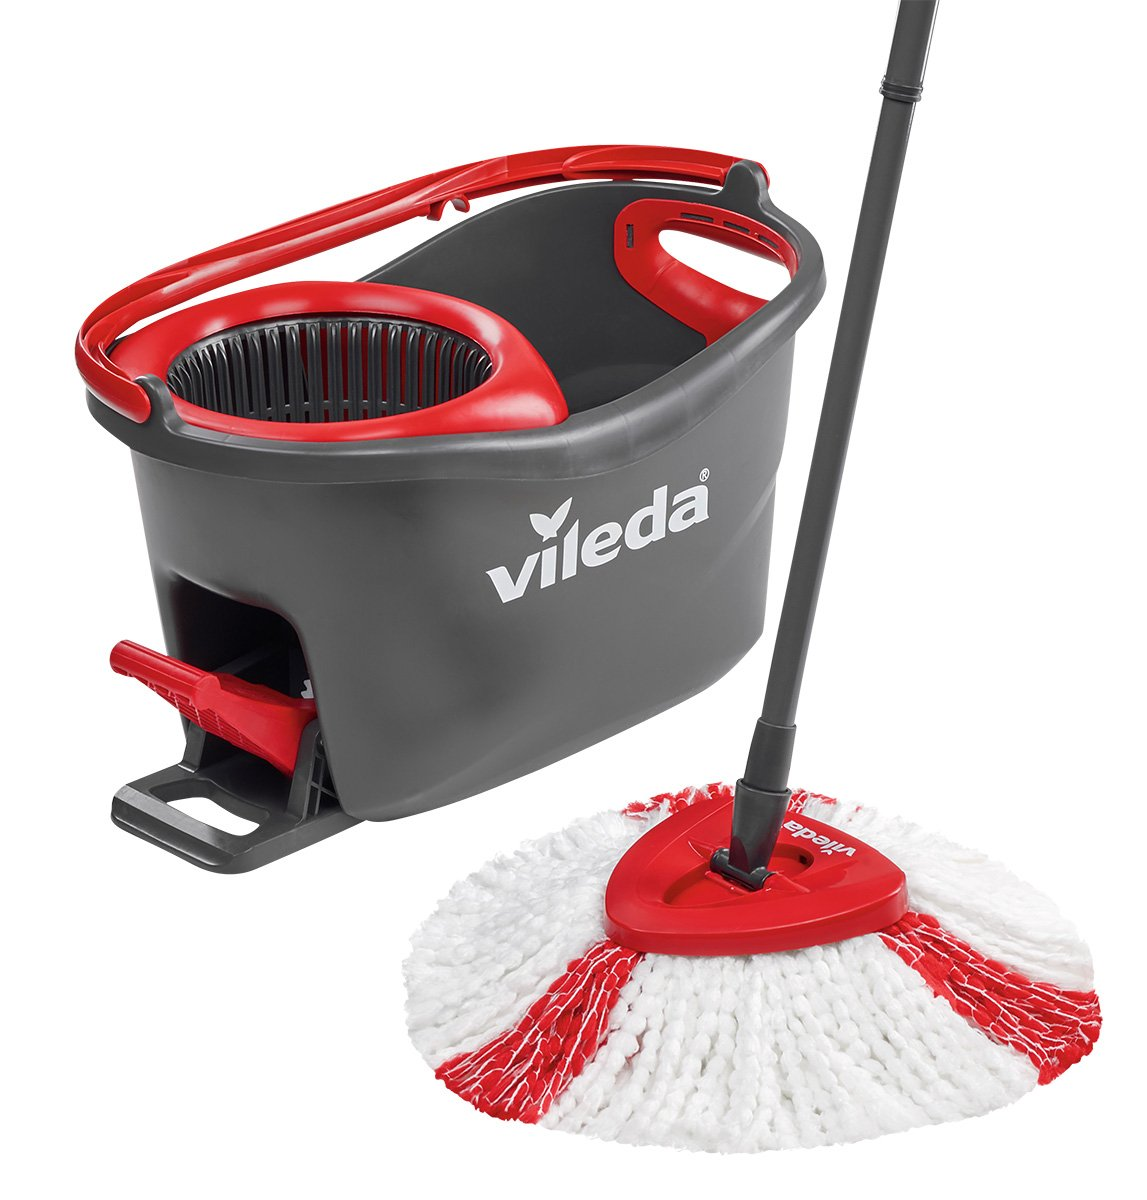 vileda easy wring and clean turbo mop and bucket set microfibre quick pedal dry ebay. Black Bedroom Furniture Sets. Home Design Ideas